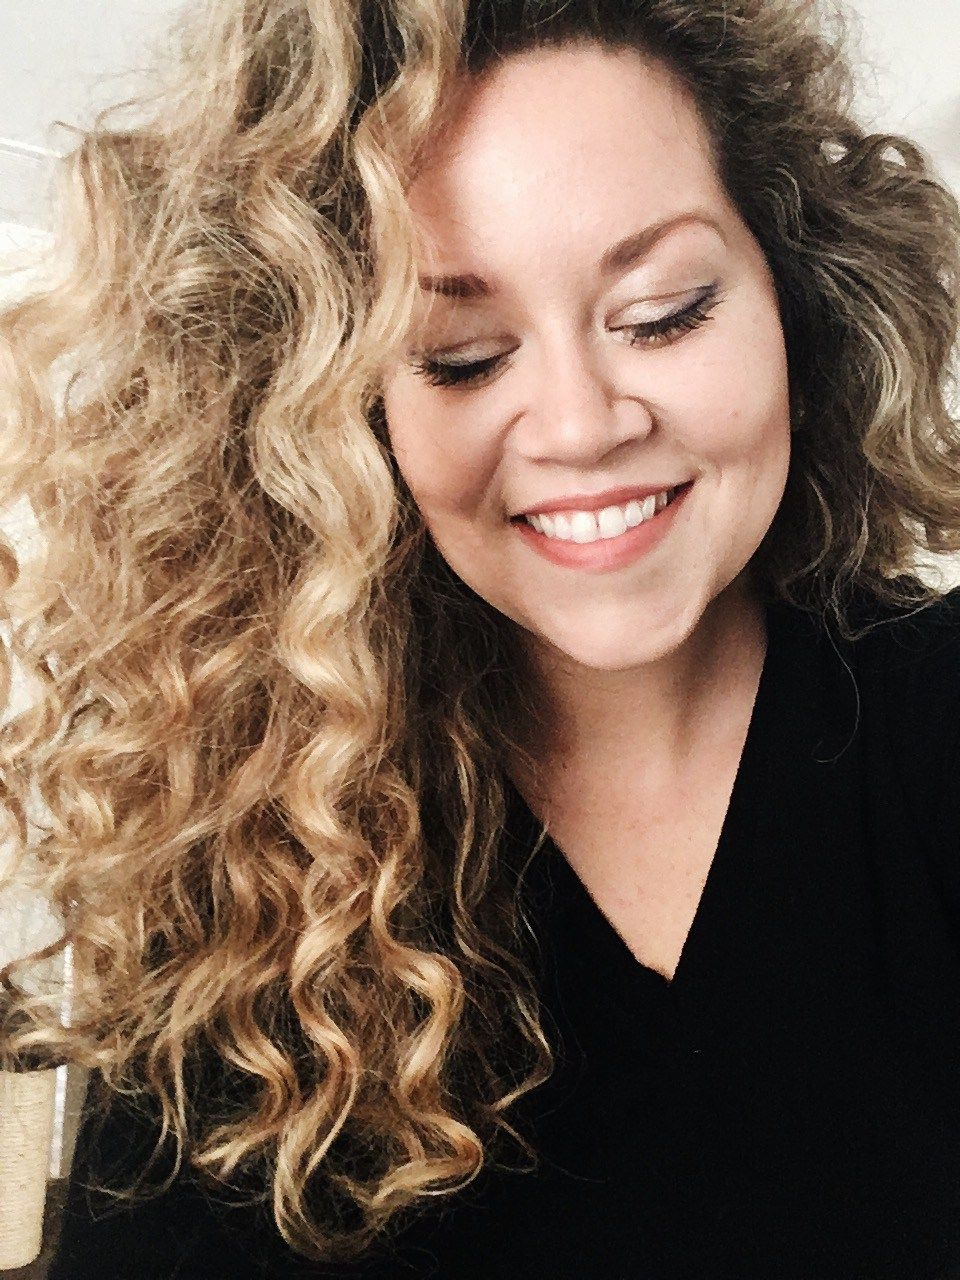 7 Holy Grail Hair Products for Curly Hair Curly hair